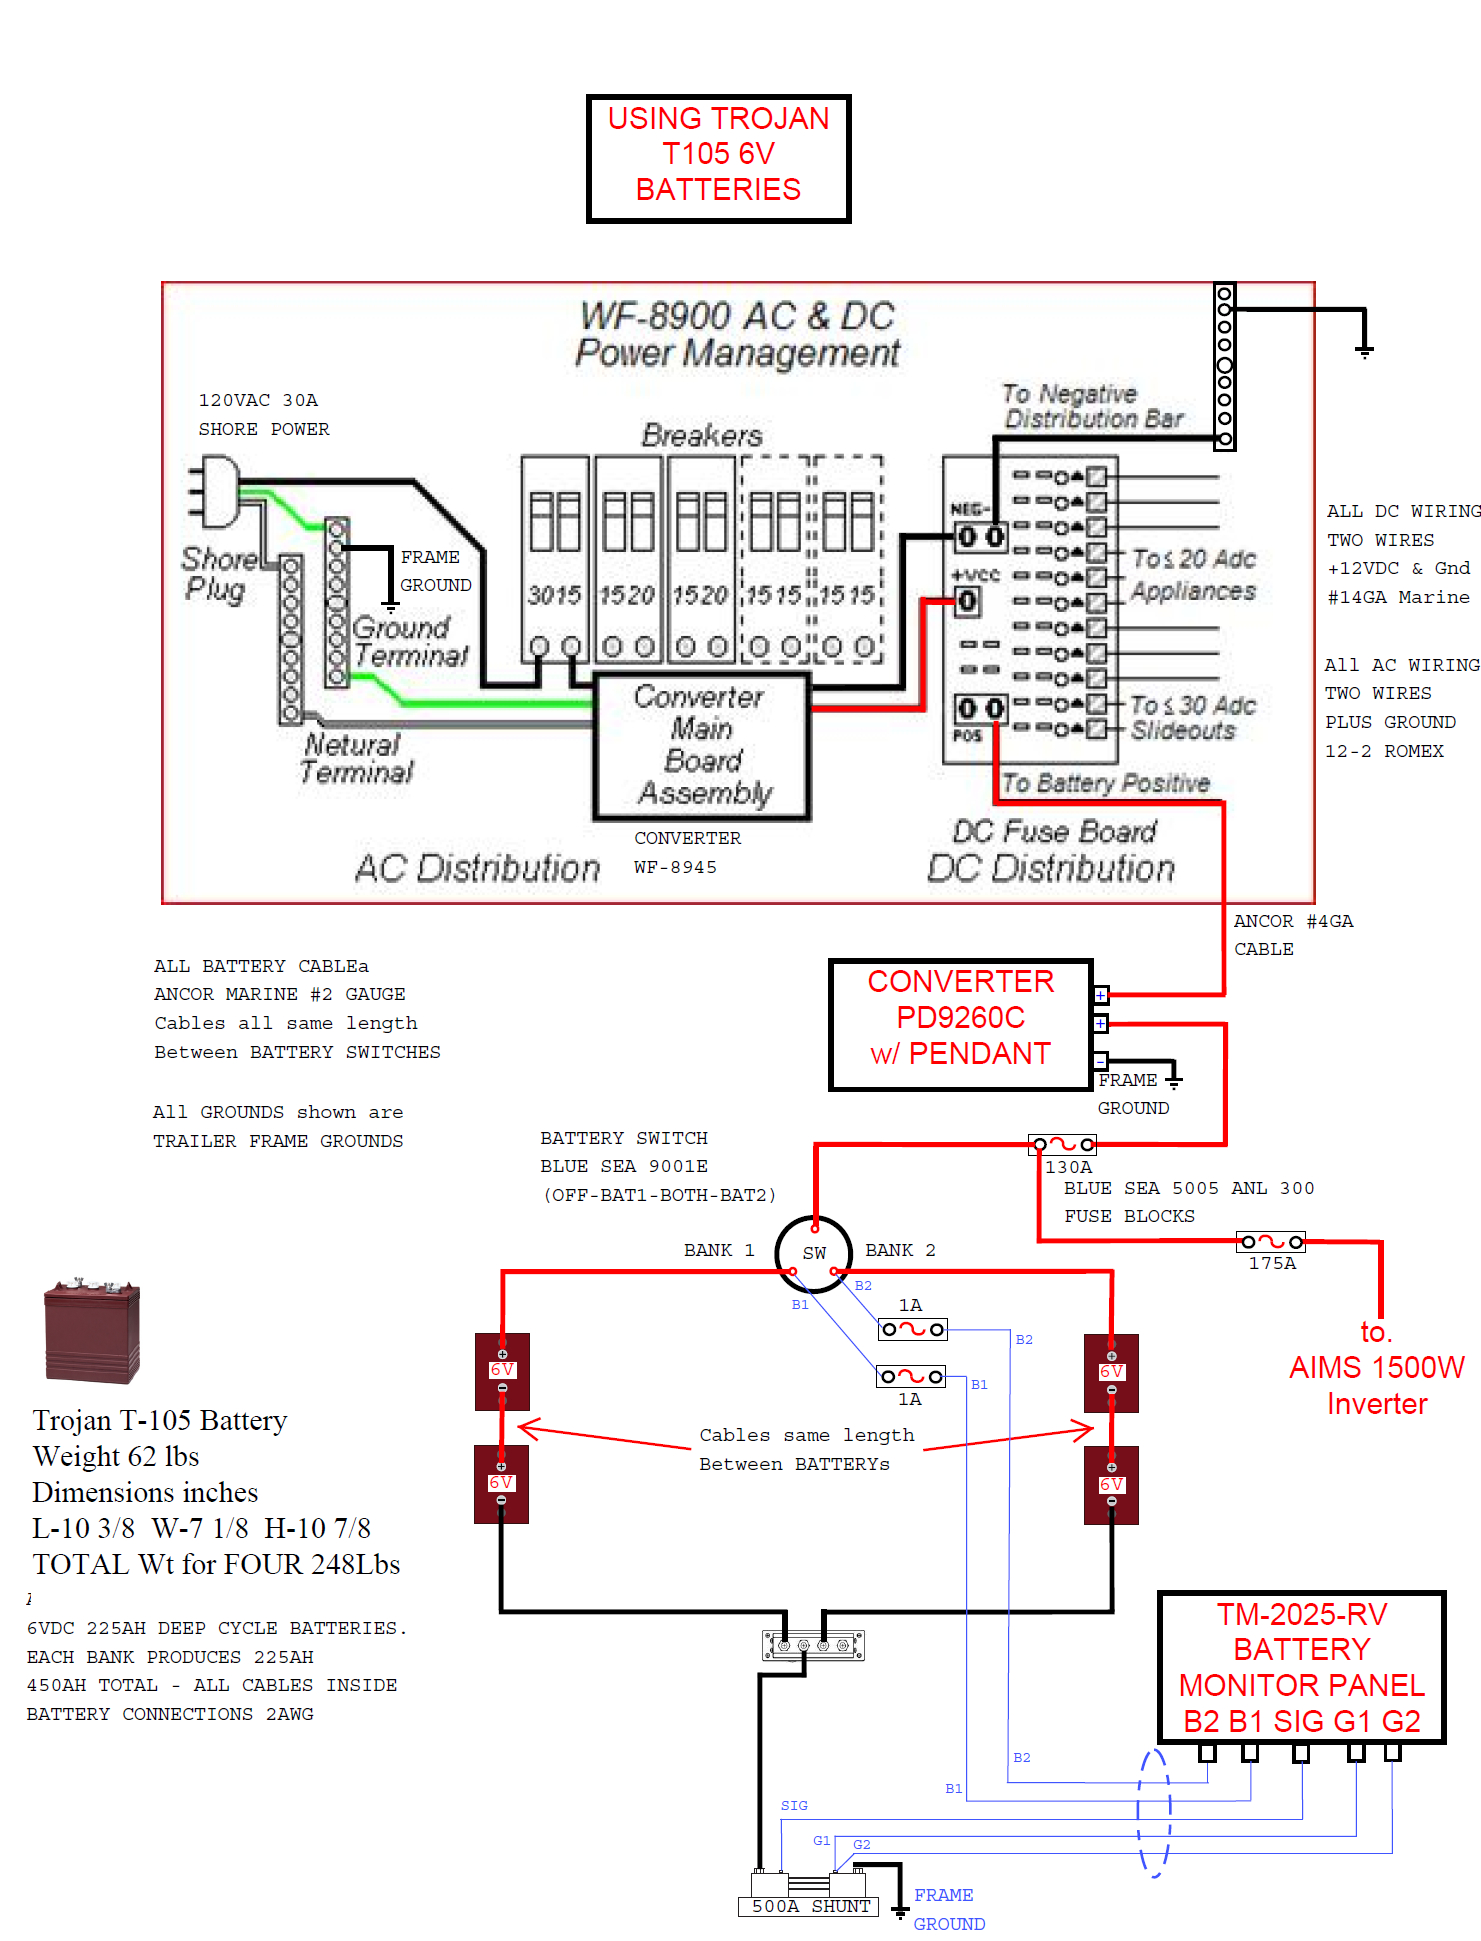 jayco trailer wiring diagram Collection-Jayco Trailer Wiring Diagram Beautiful Battery Boat Wiringam Installing Float Switch to Bilge Pump Page 2-o